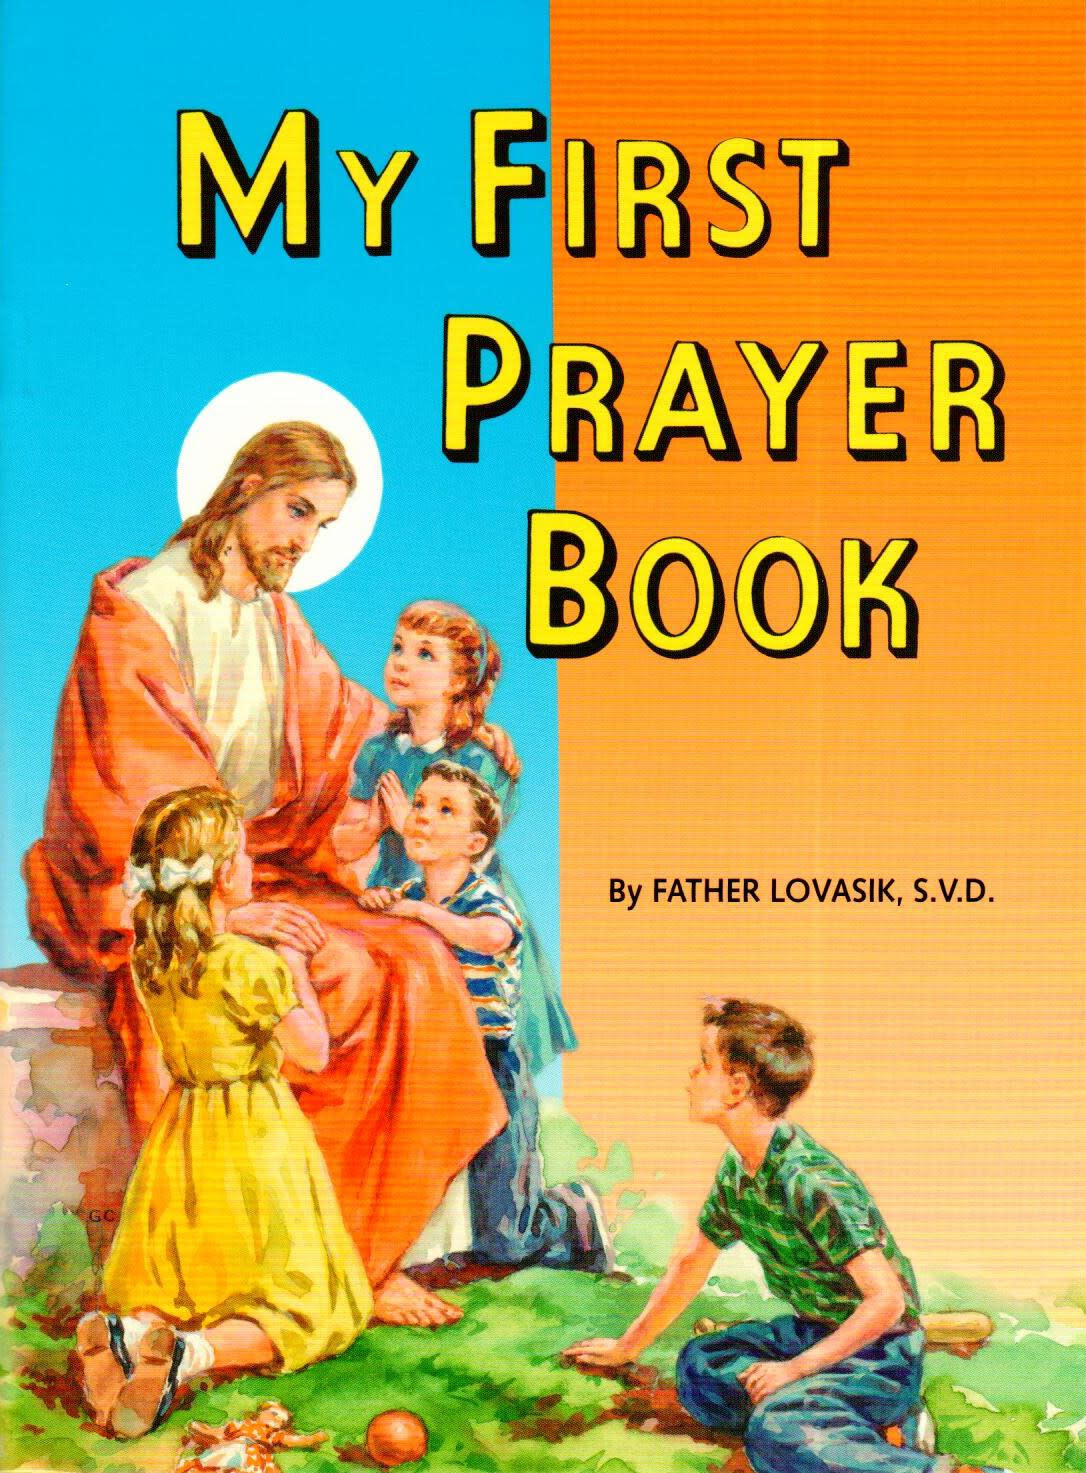 My First Prayer Book (St. Joseph Picture Books)